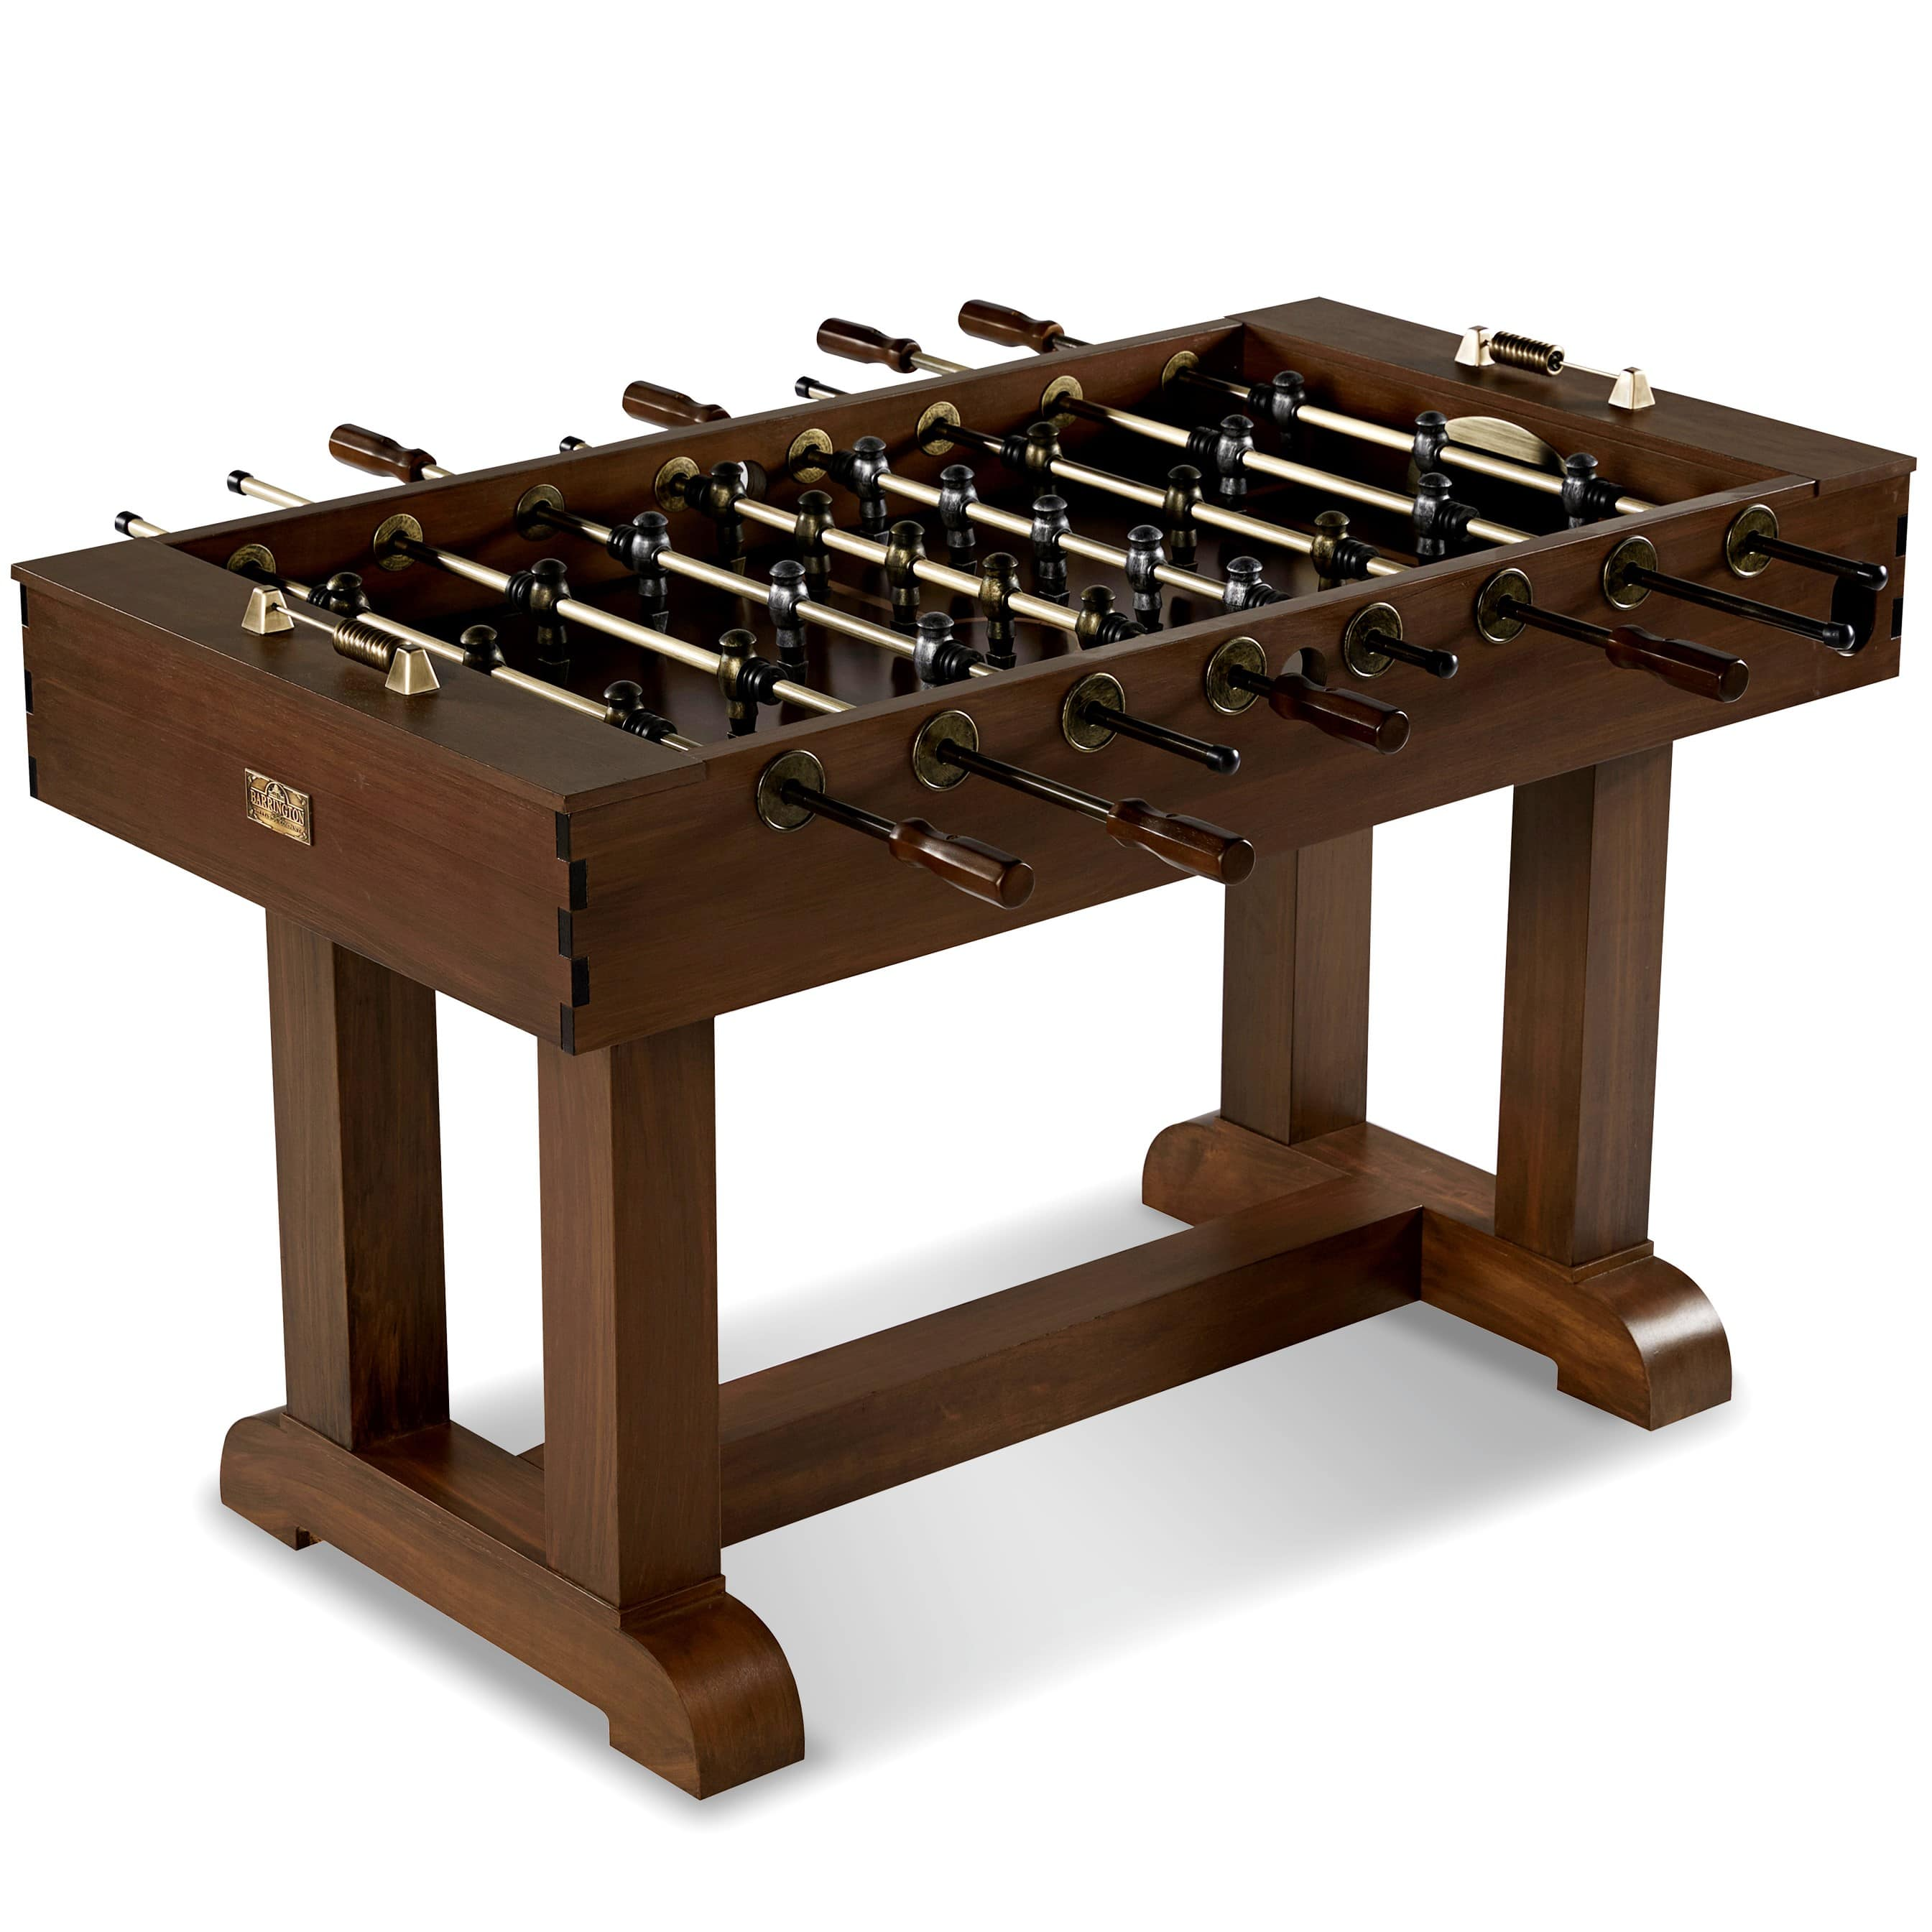 "(MD Sports) Barrington Premium 56"" Foosball Table $180 @ Walmart"